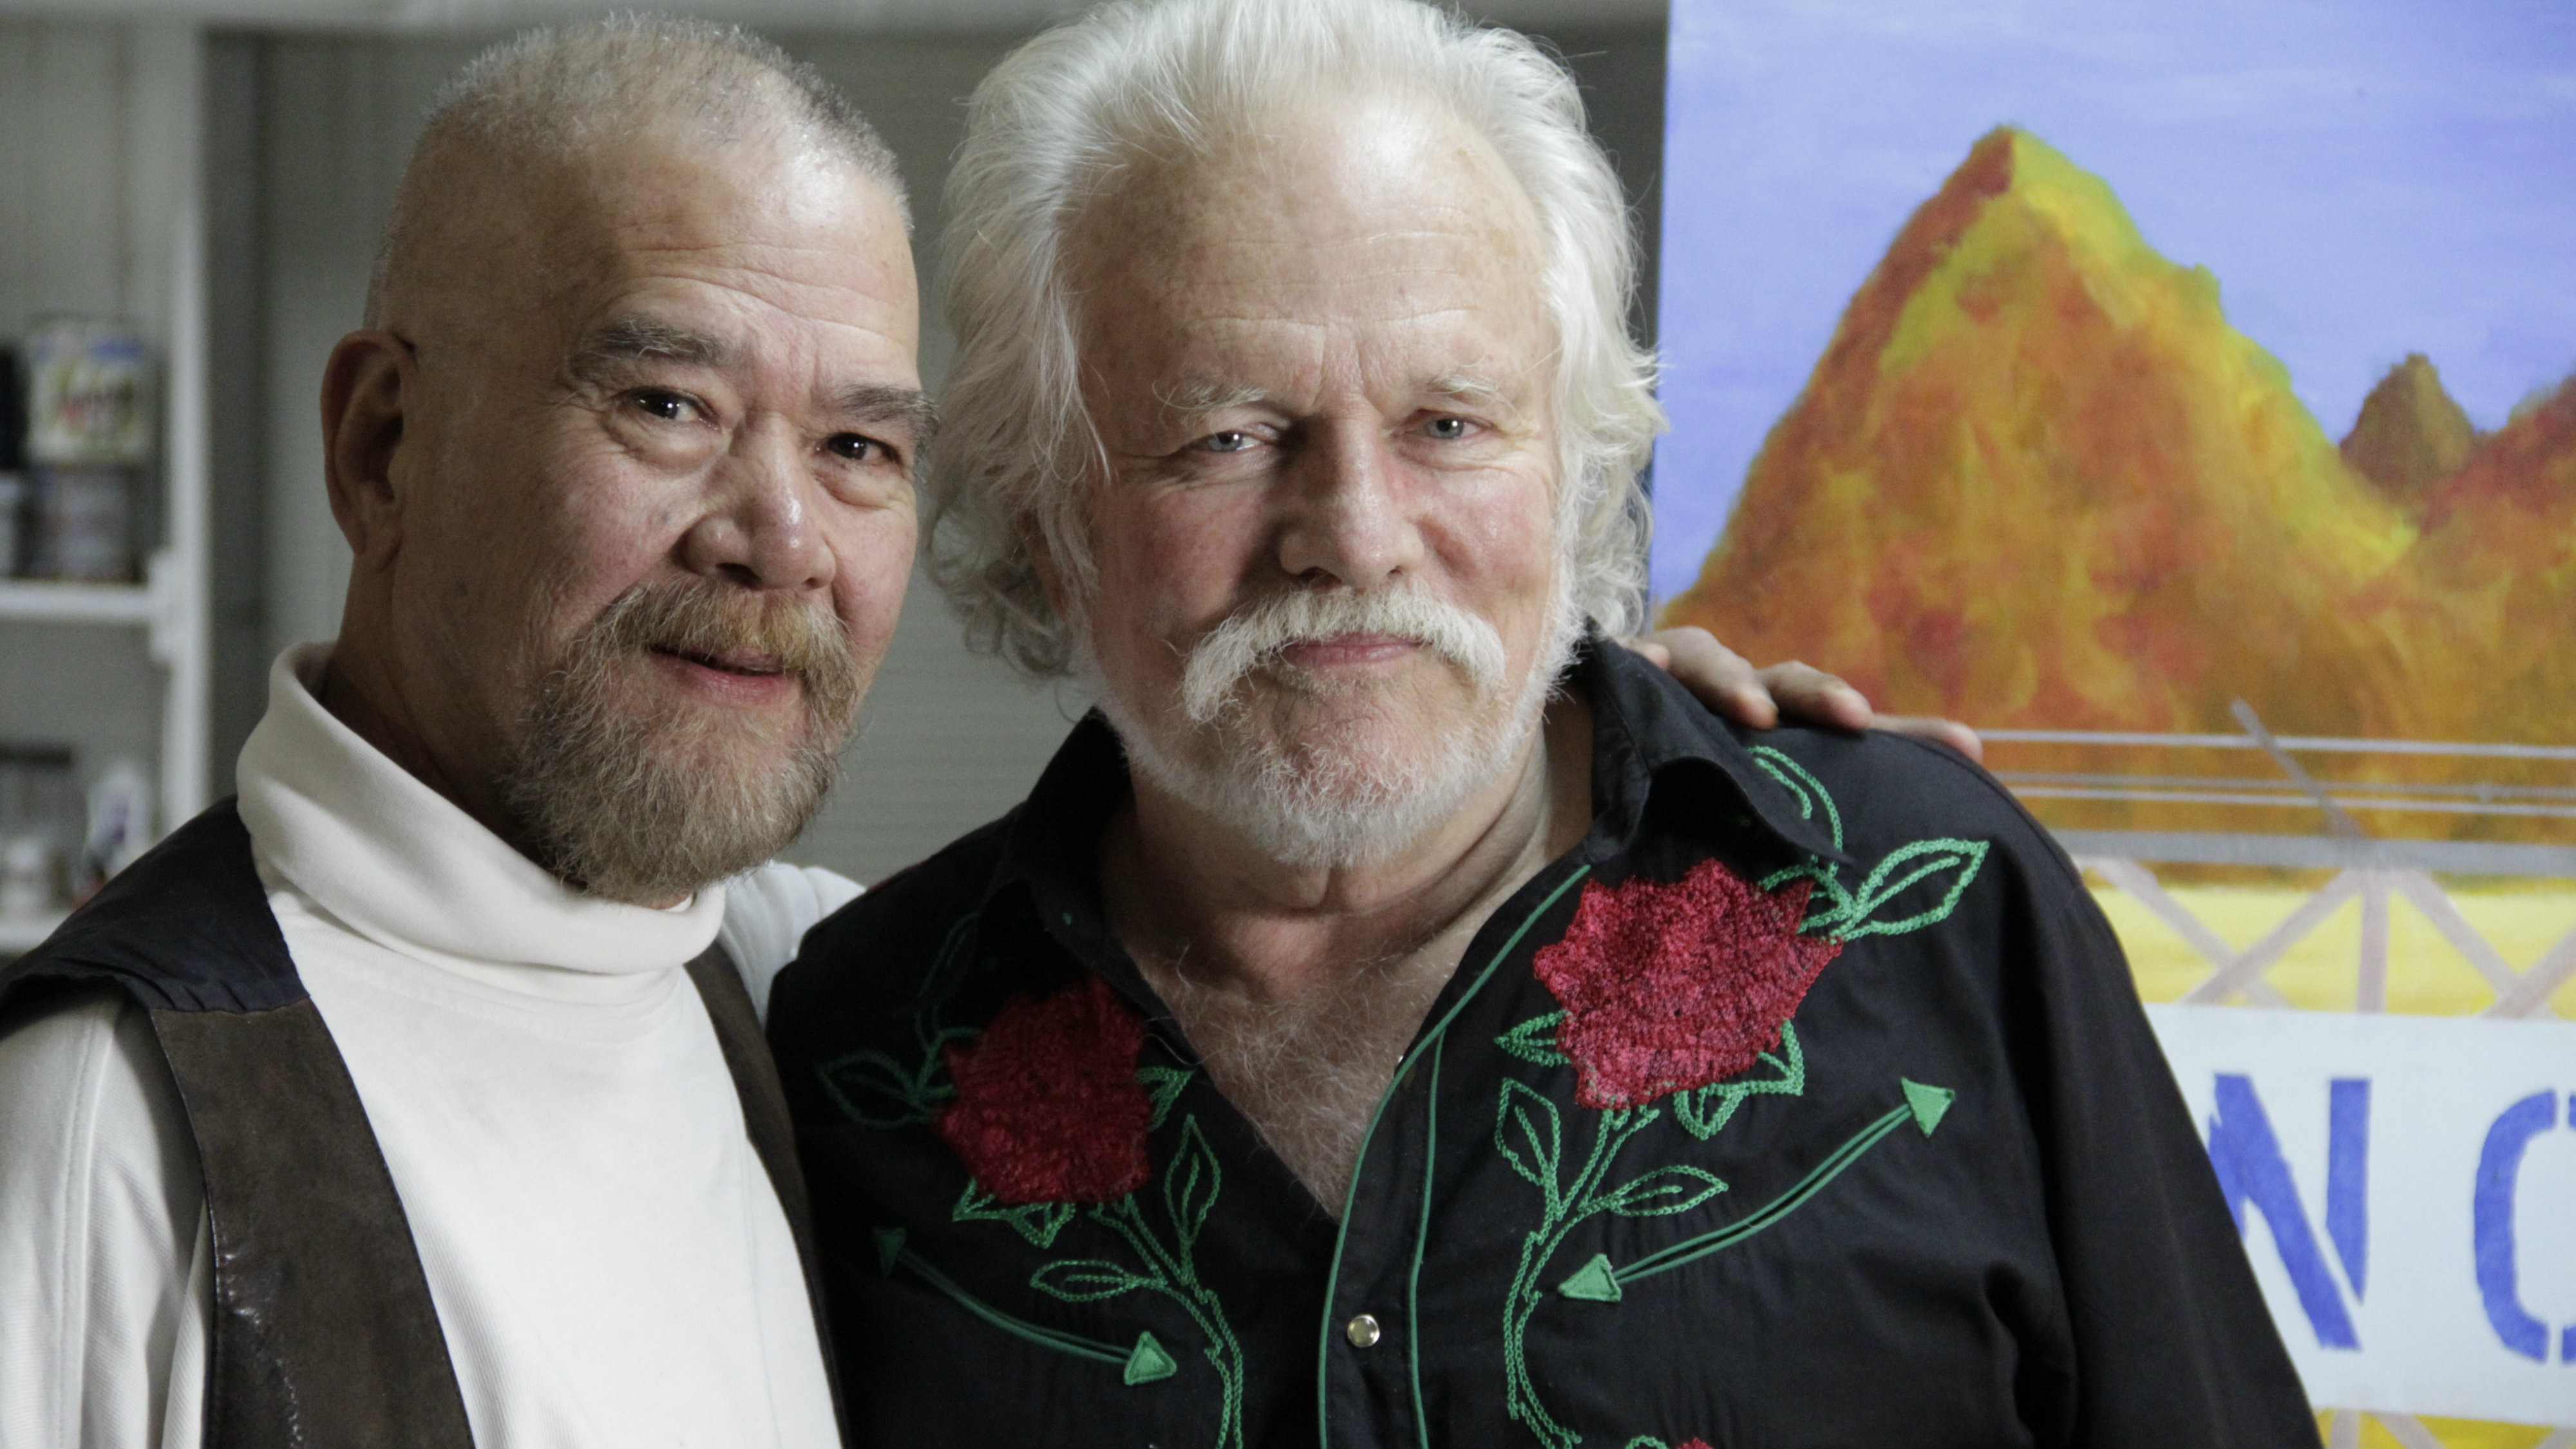 Photo: 'Limited Partnership' film gay marriage